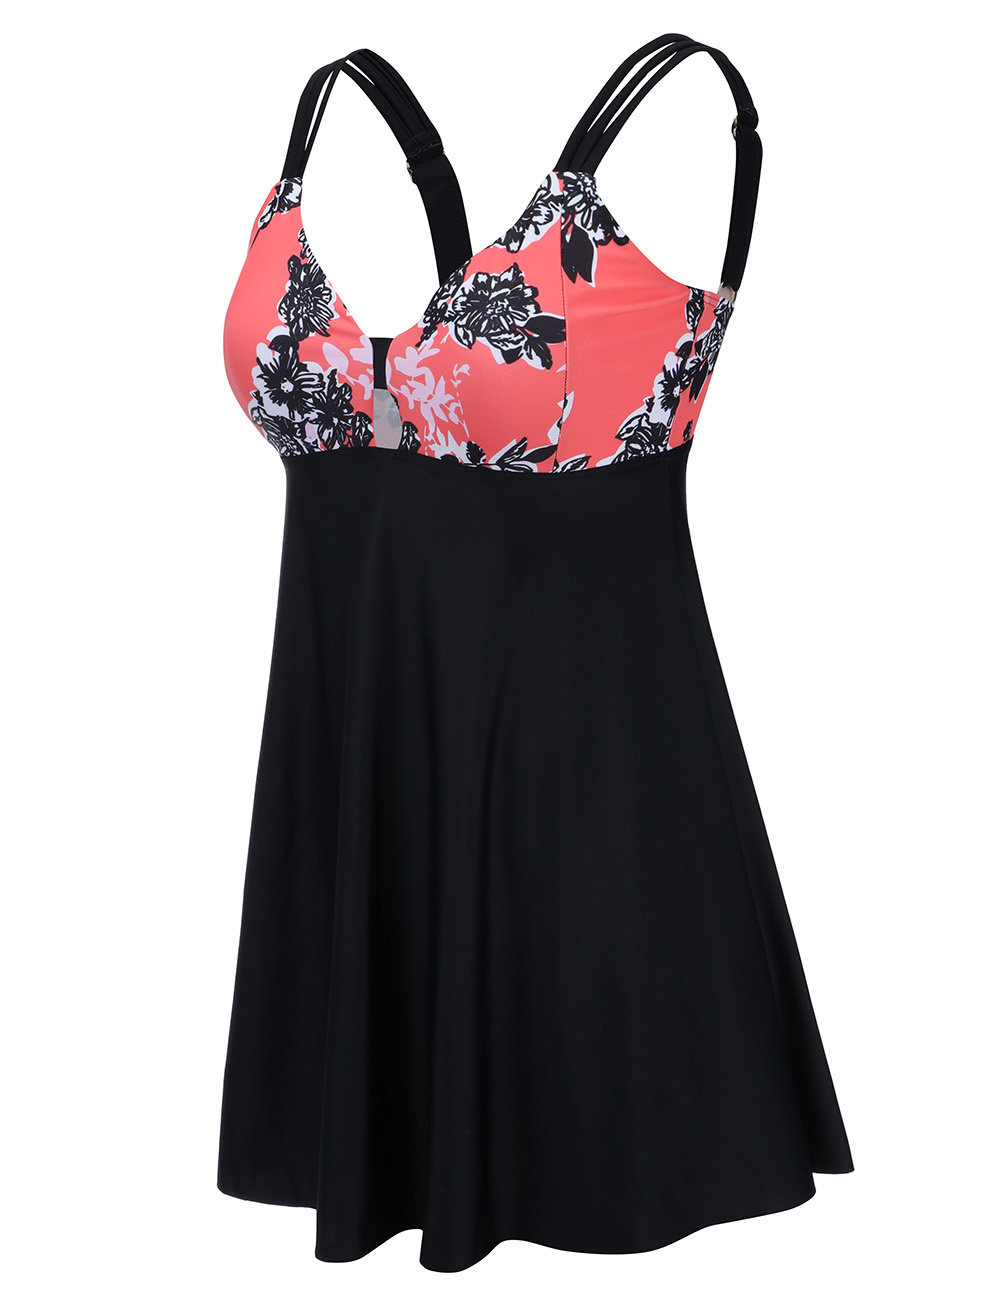 //cdn.affectcloud.com/hexinfashion/upload/imgs/Swimwear/Tankini/F185049-OG2/F185049-OG2-201911055dc1147fac7a0.jpg